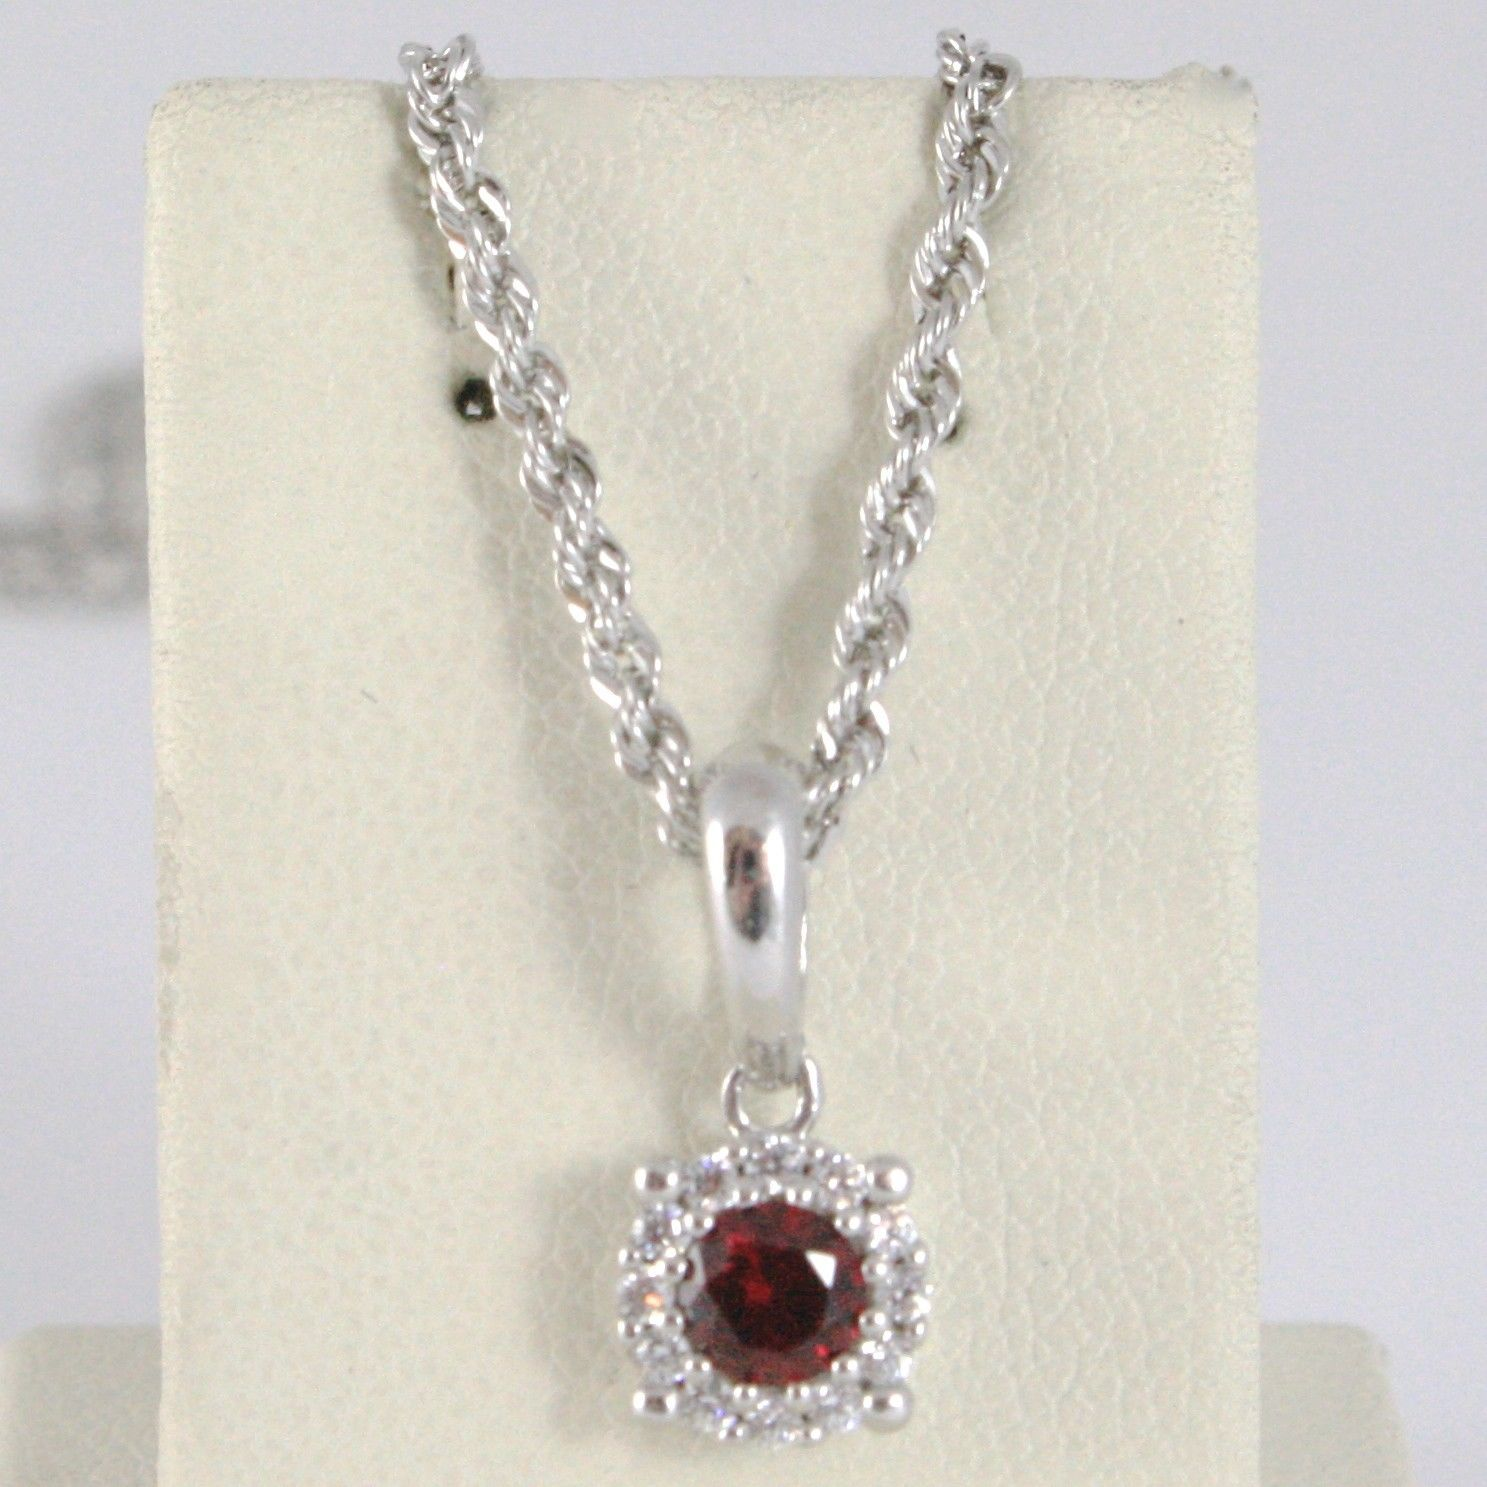 18K WHITE GOLD NECKLACE ROPE CHAIN & FLOWER PENDANT, RED ZIRCONIA ROUND CUT